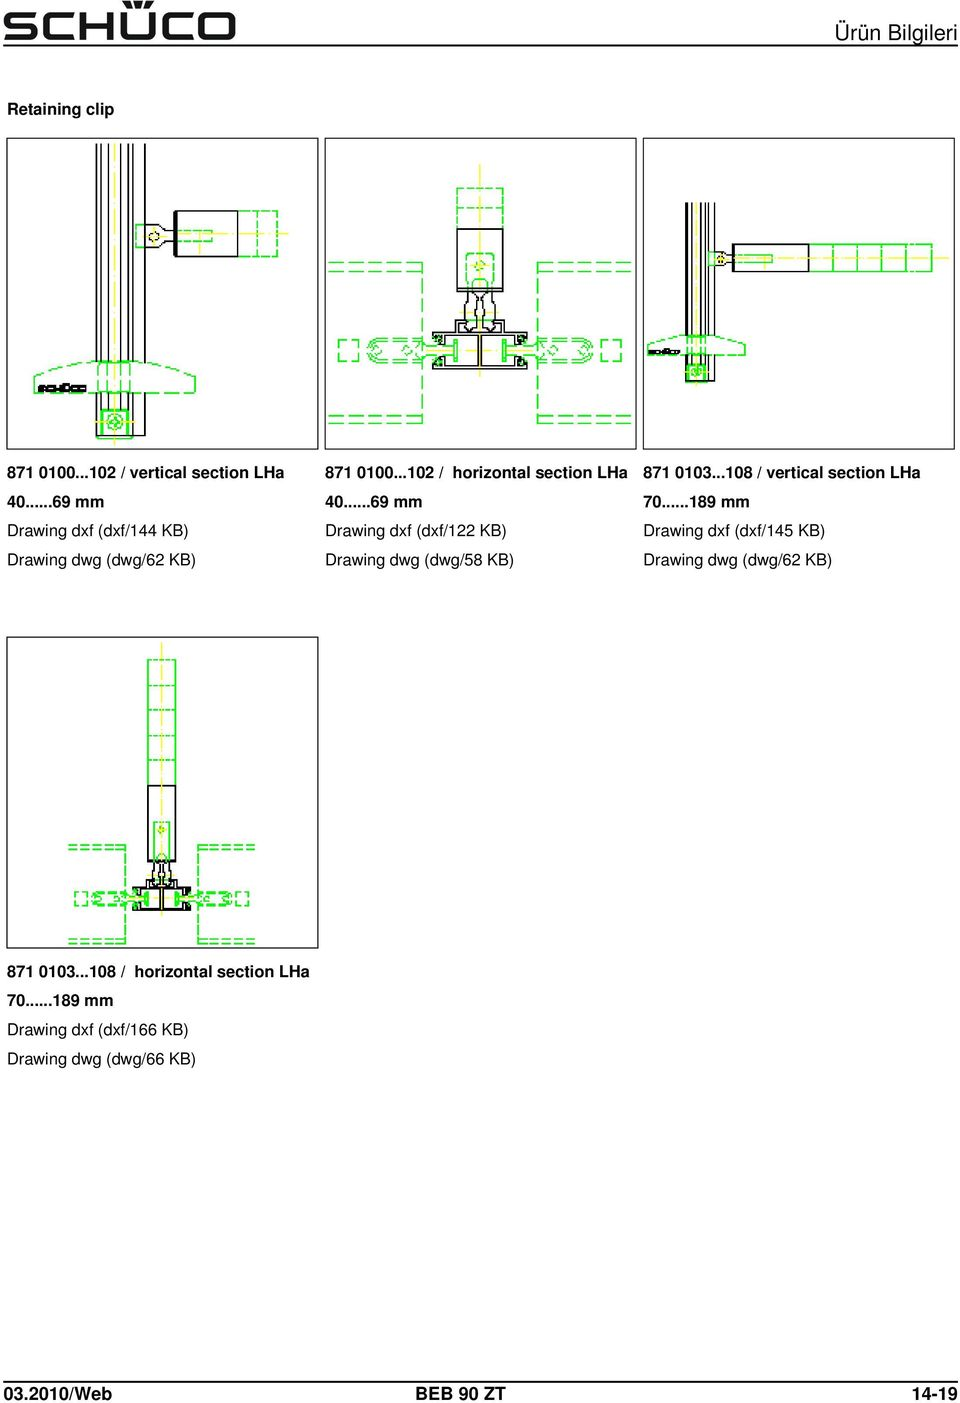 ..69 mm Drawing dxf (dxf/122 KB) Drawing dwg (dwg/58 KB) 871 0103...108 / vertical LHa 70.